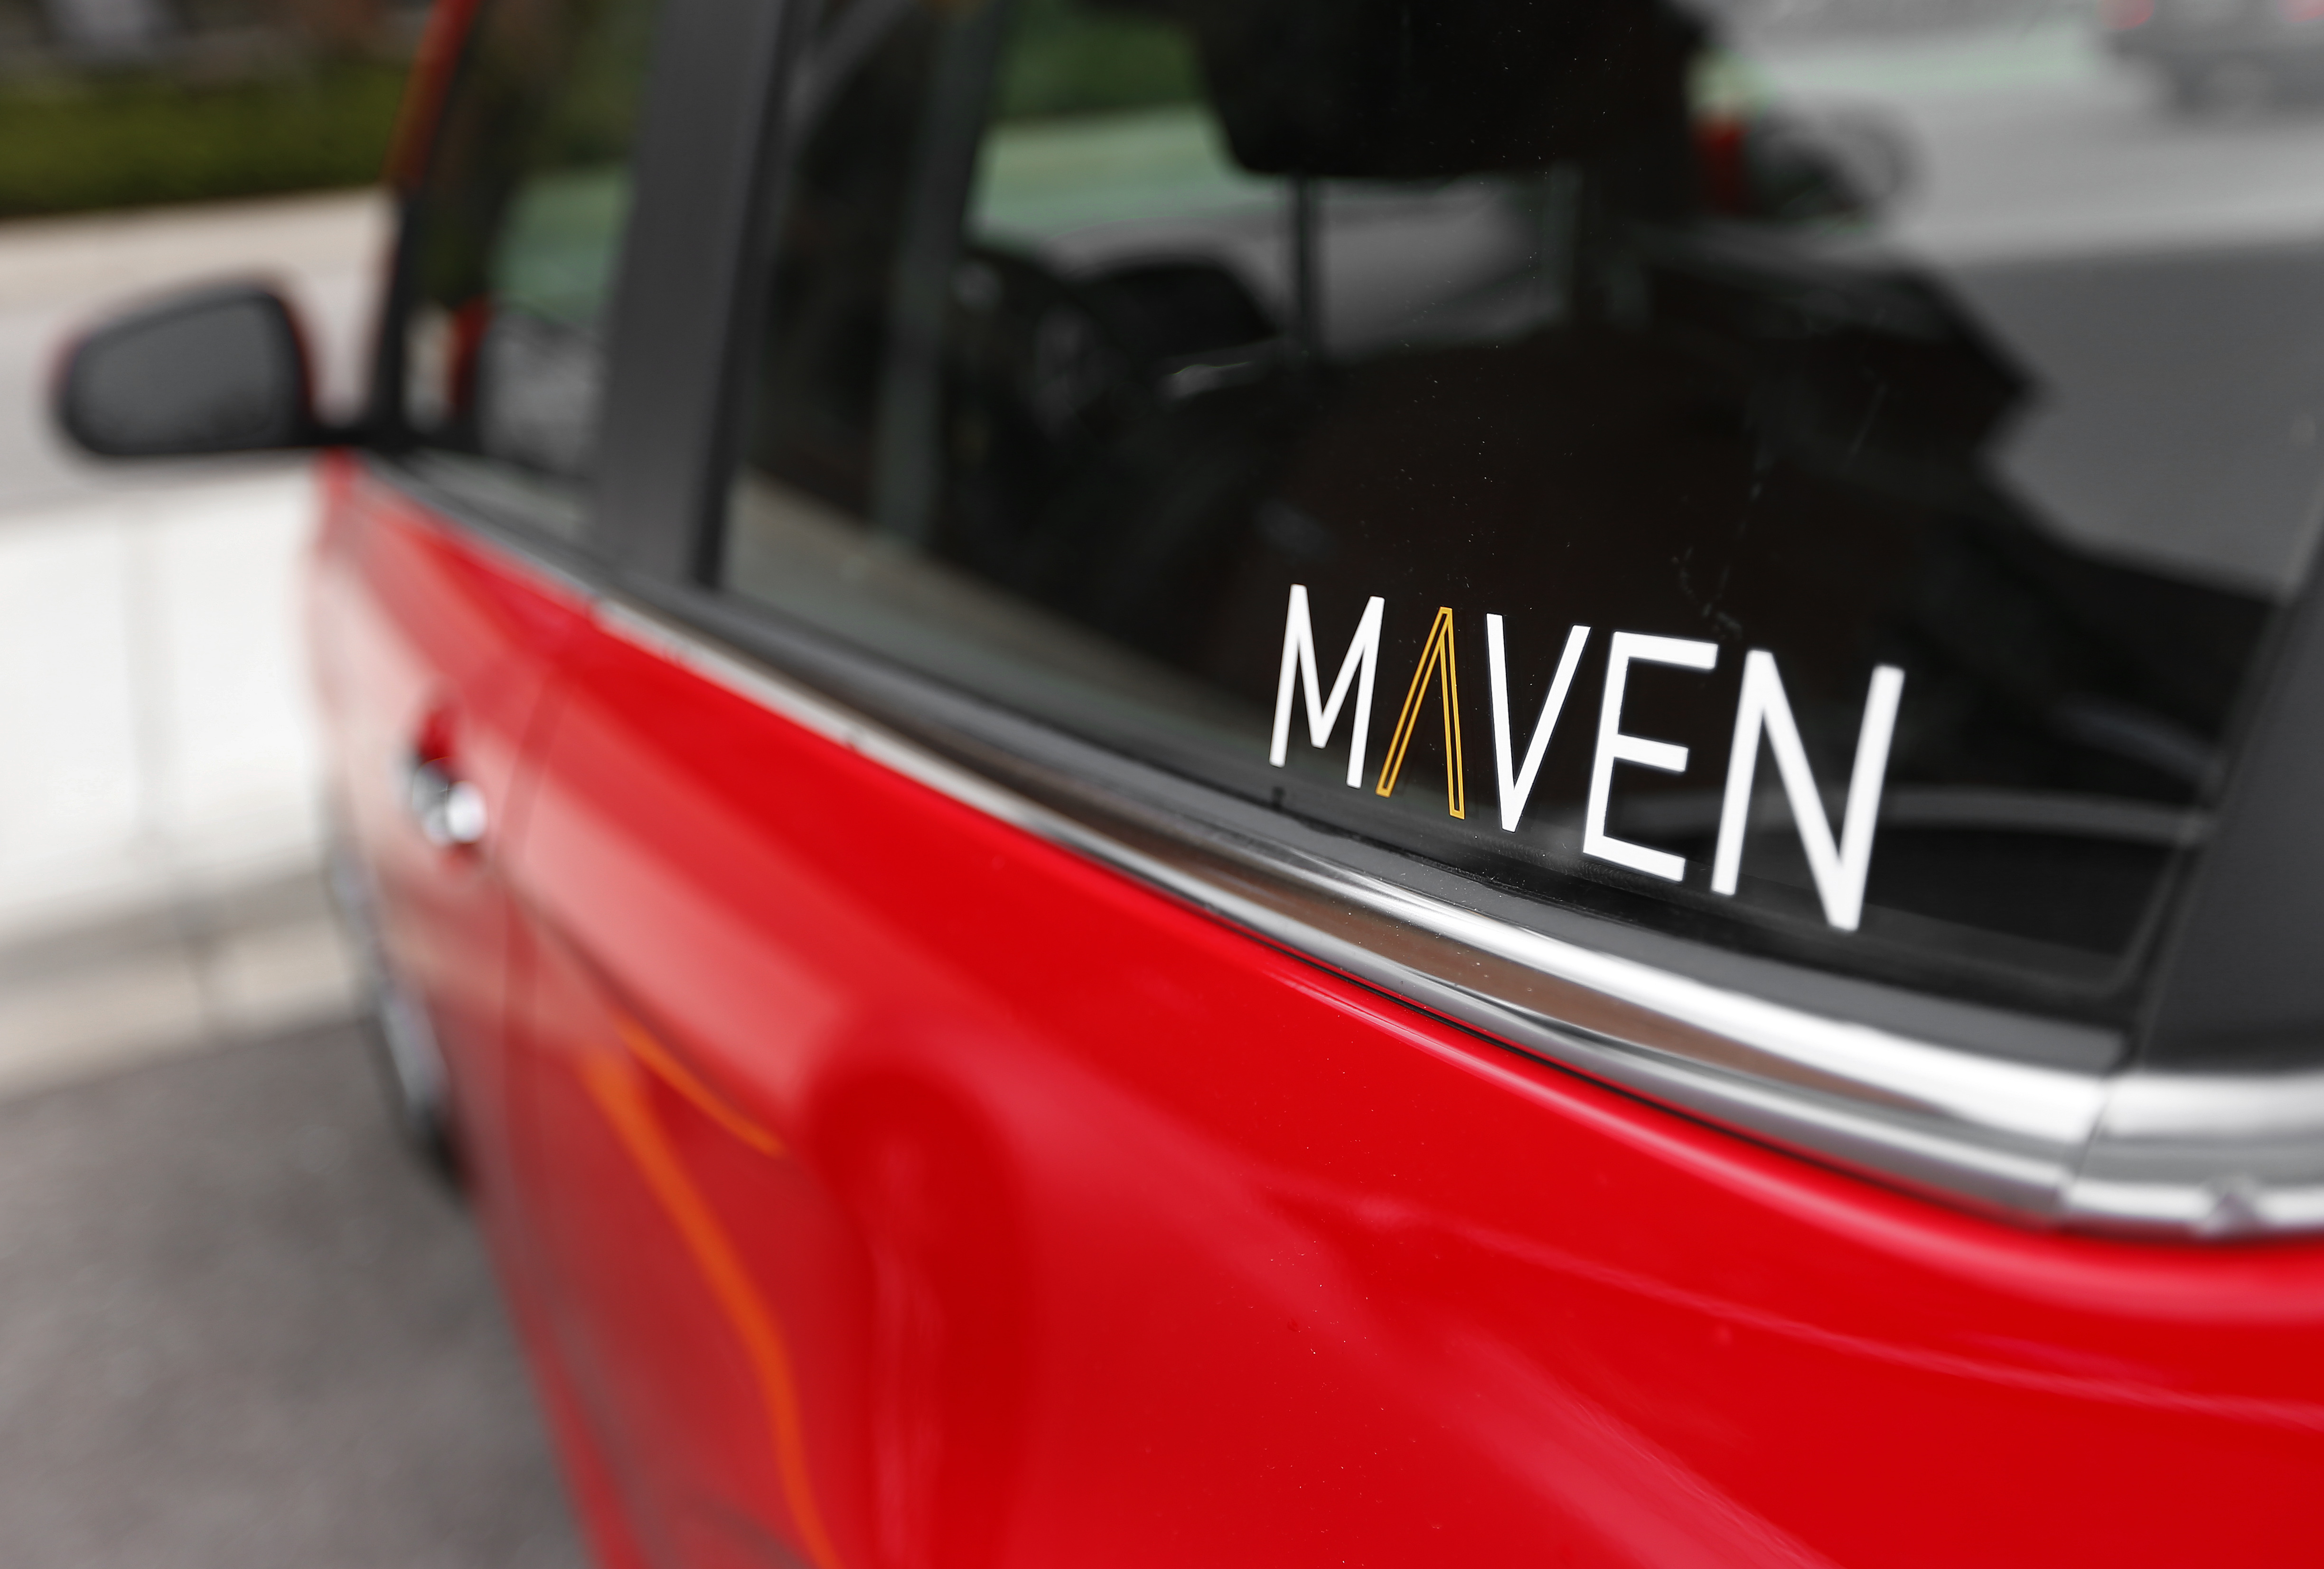 GM car-sharing service Maven opens in DC